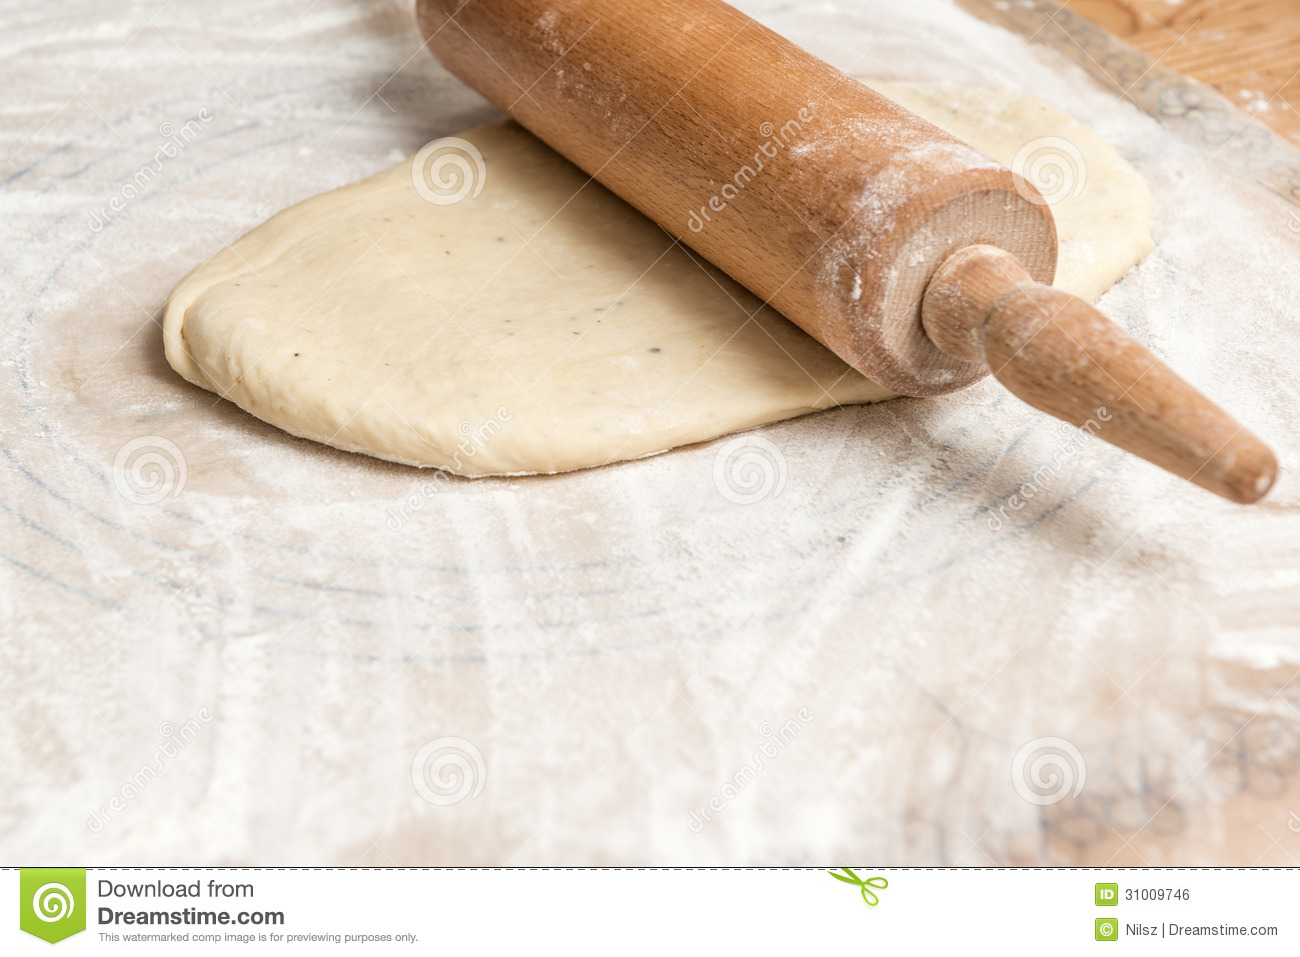 Dough Roller Royalty Free Stock Image - Image: 31009746